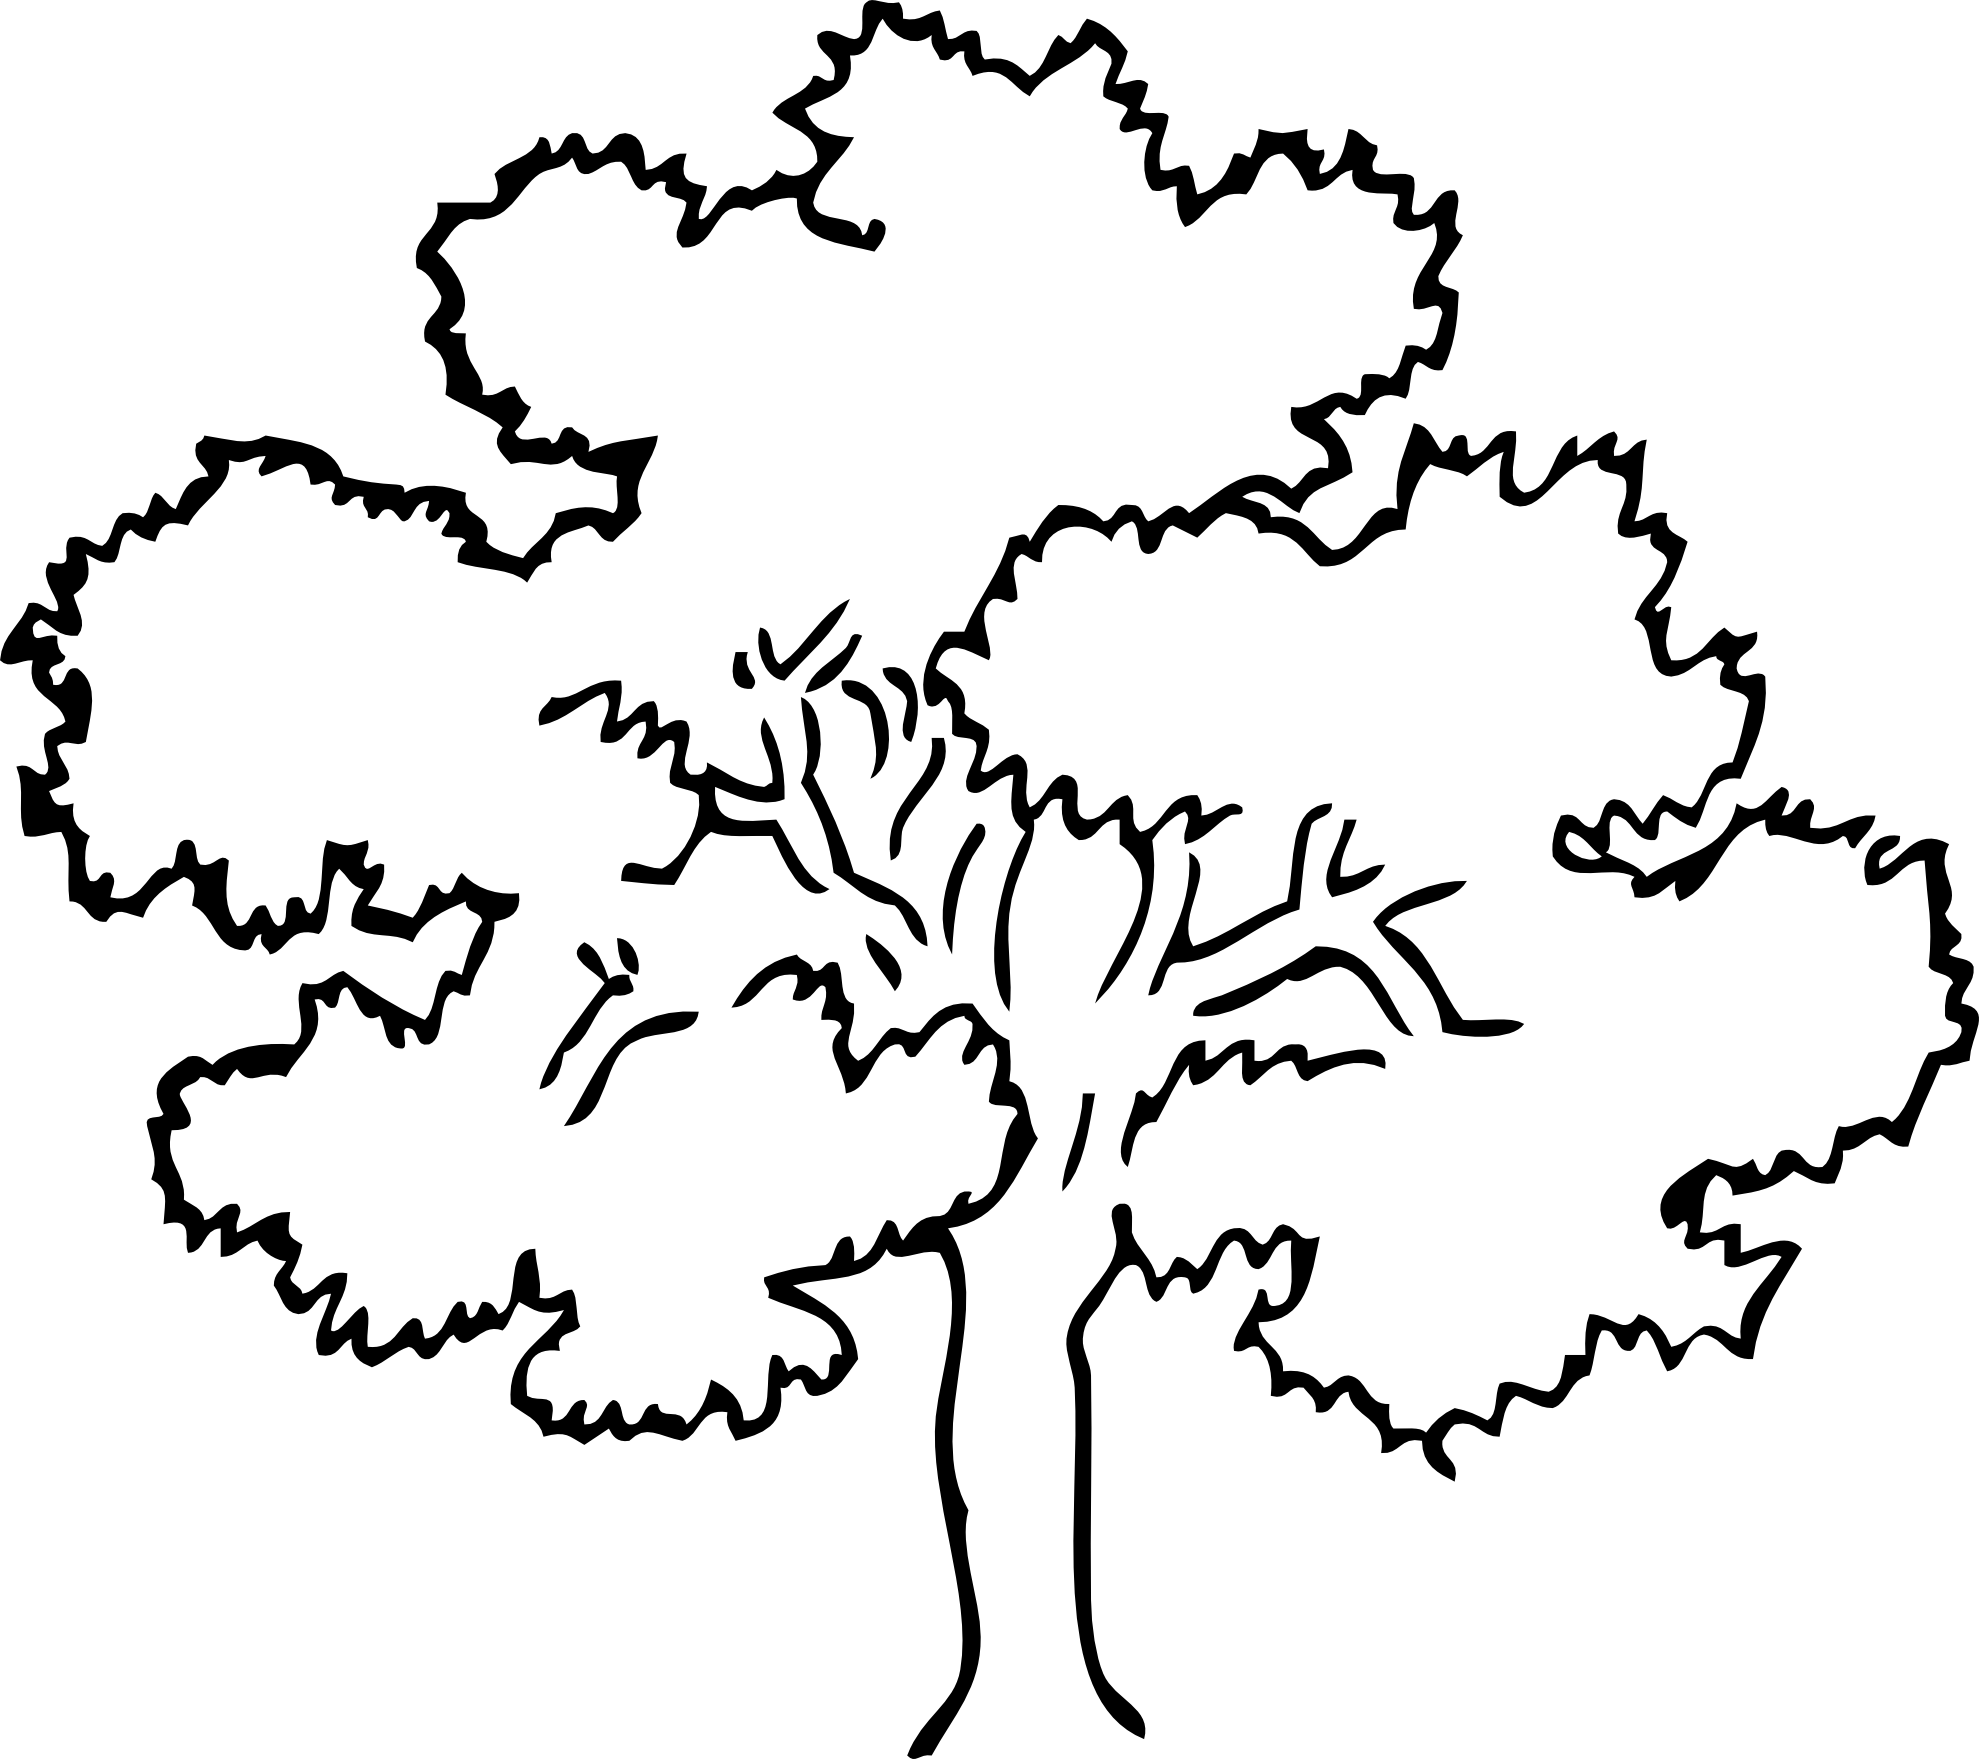 Apple tree clipart black and white free clipart